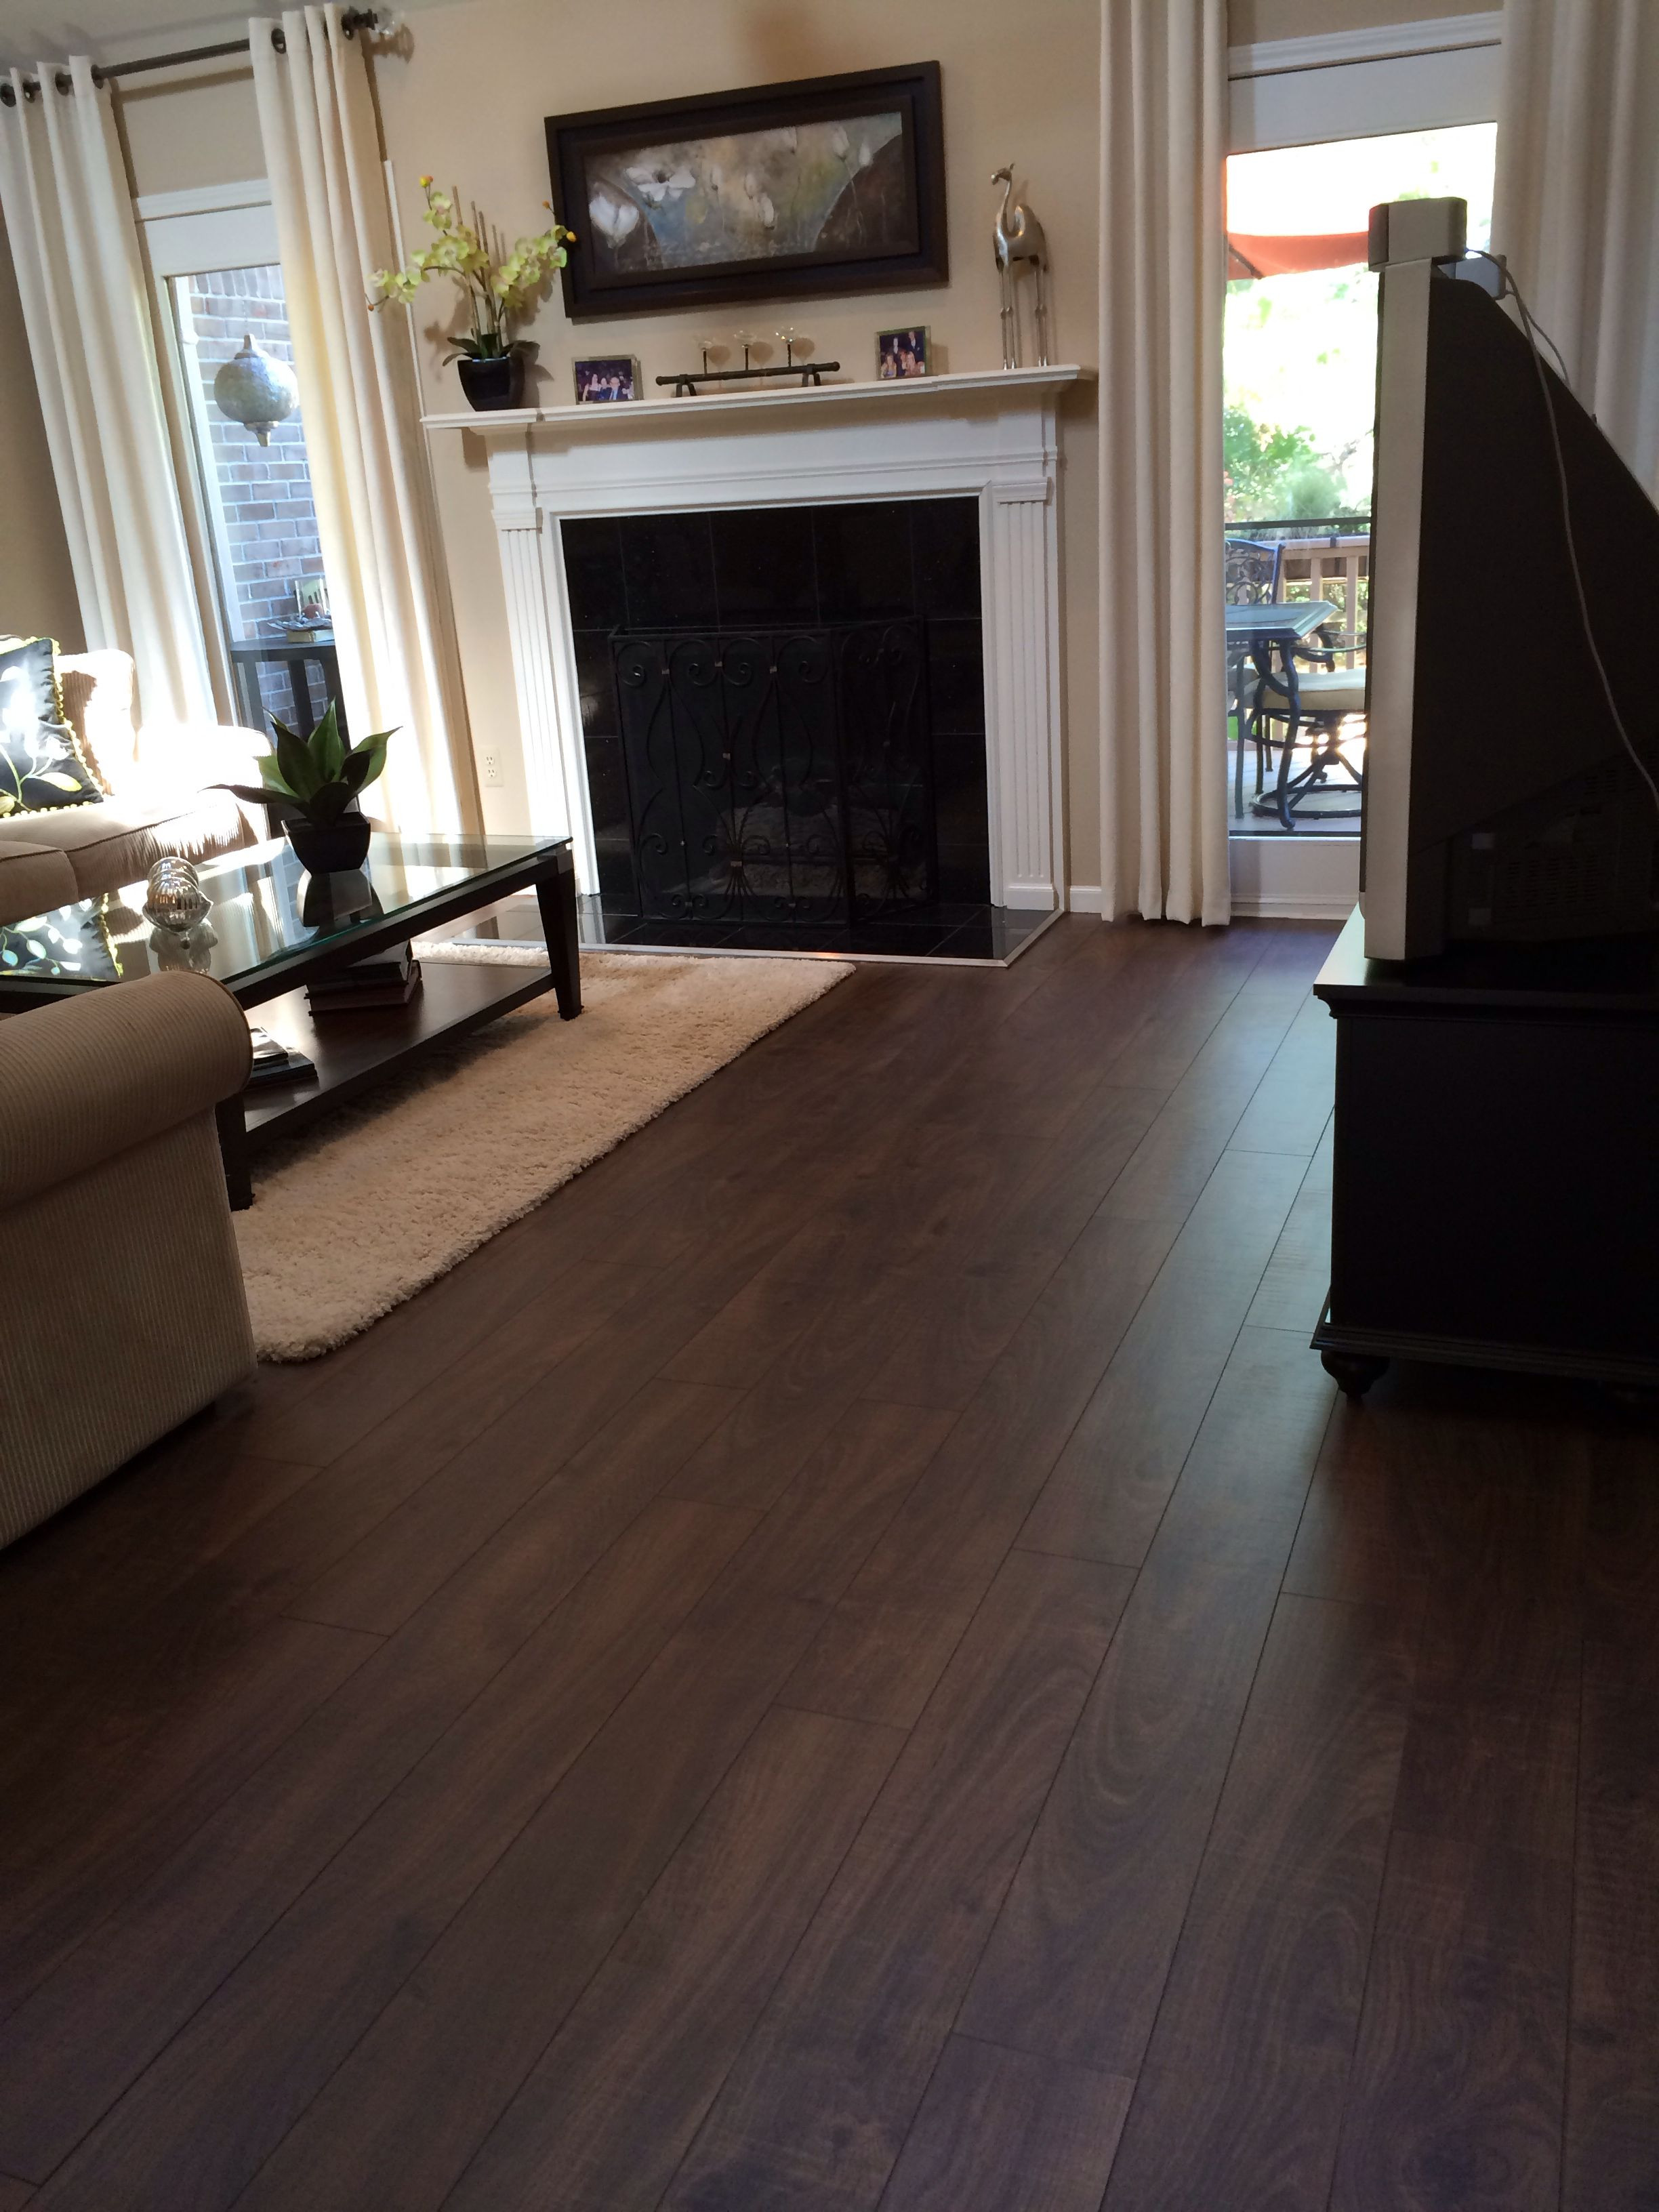 where to buy hardwood flooring near me of pin by liliana legarreta on floors and stairs pinterest home with regard to dark laminate kitchen flooring best of dark laminate kitchen flooring we are inspired by laminate floor ideas for more inspiration visit